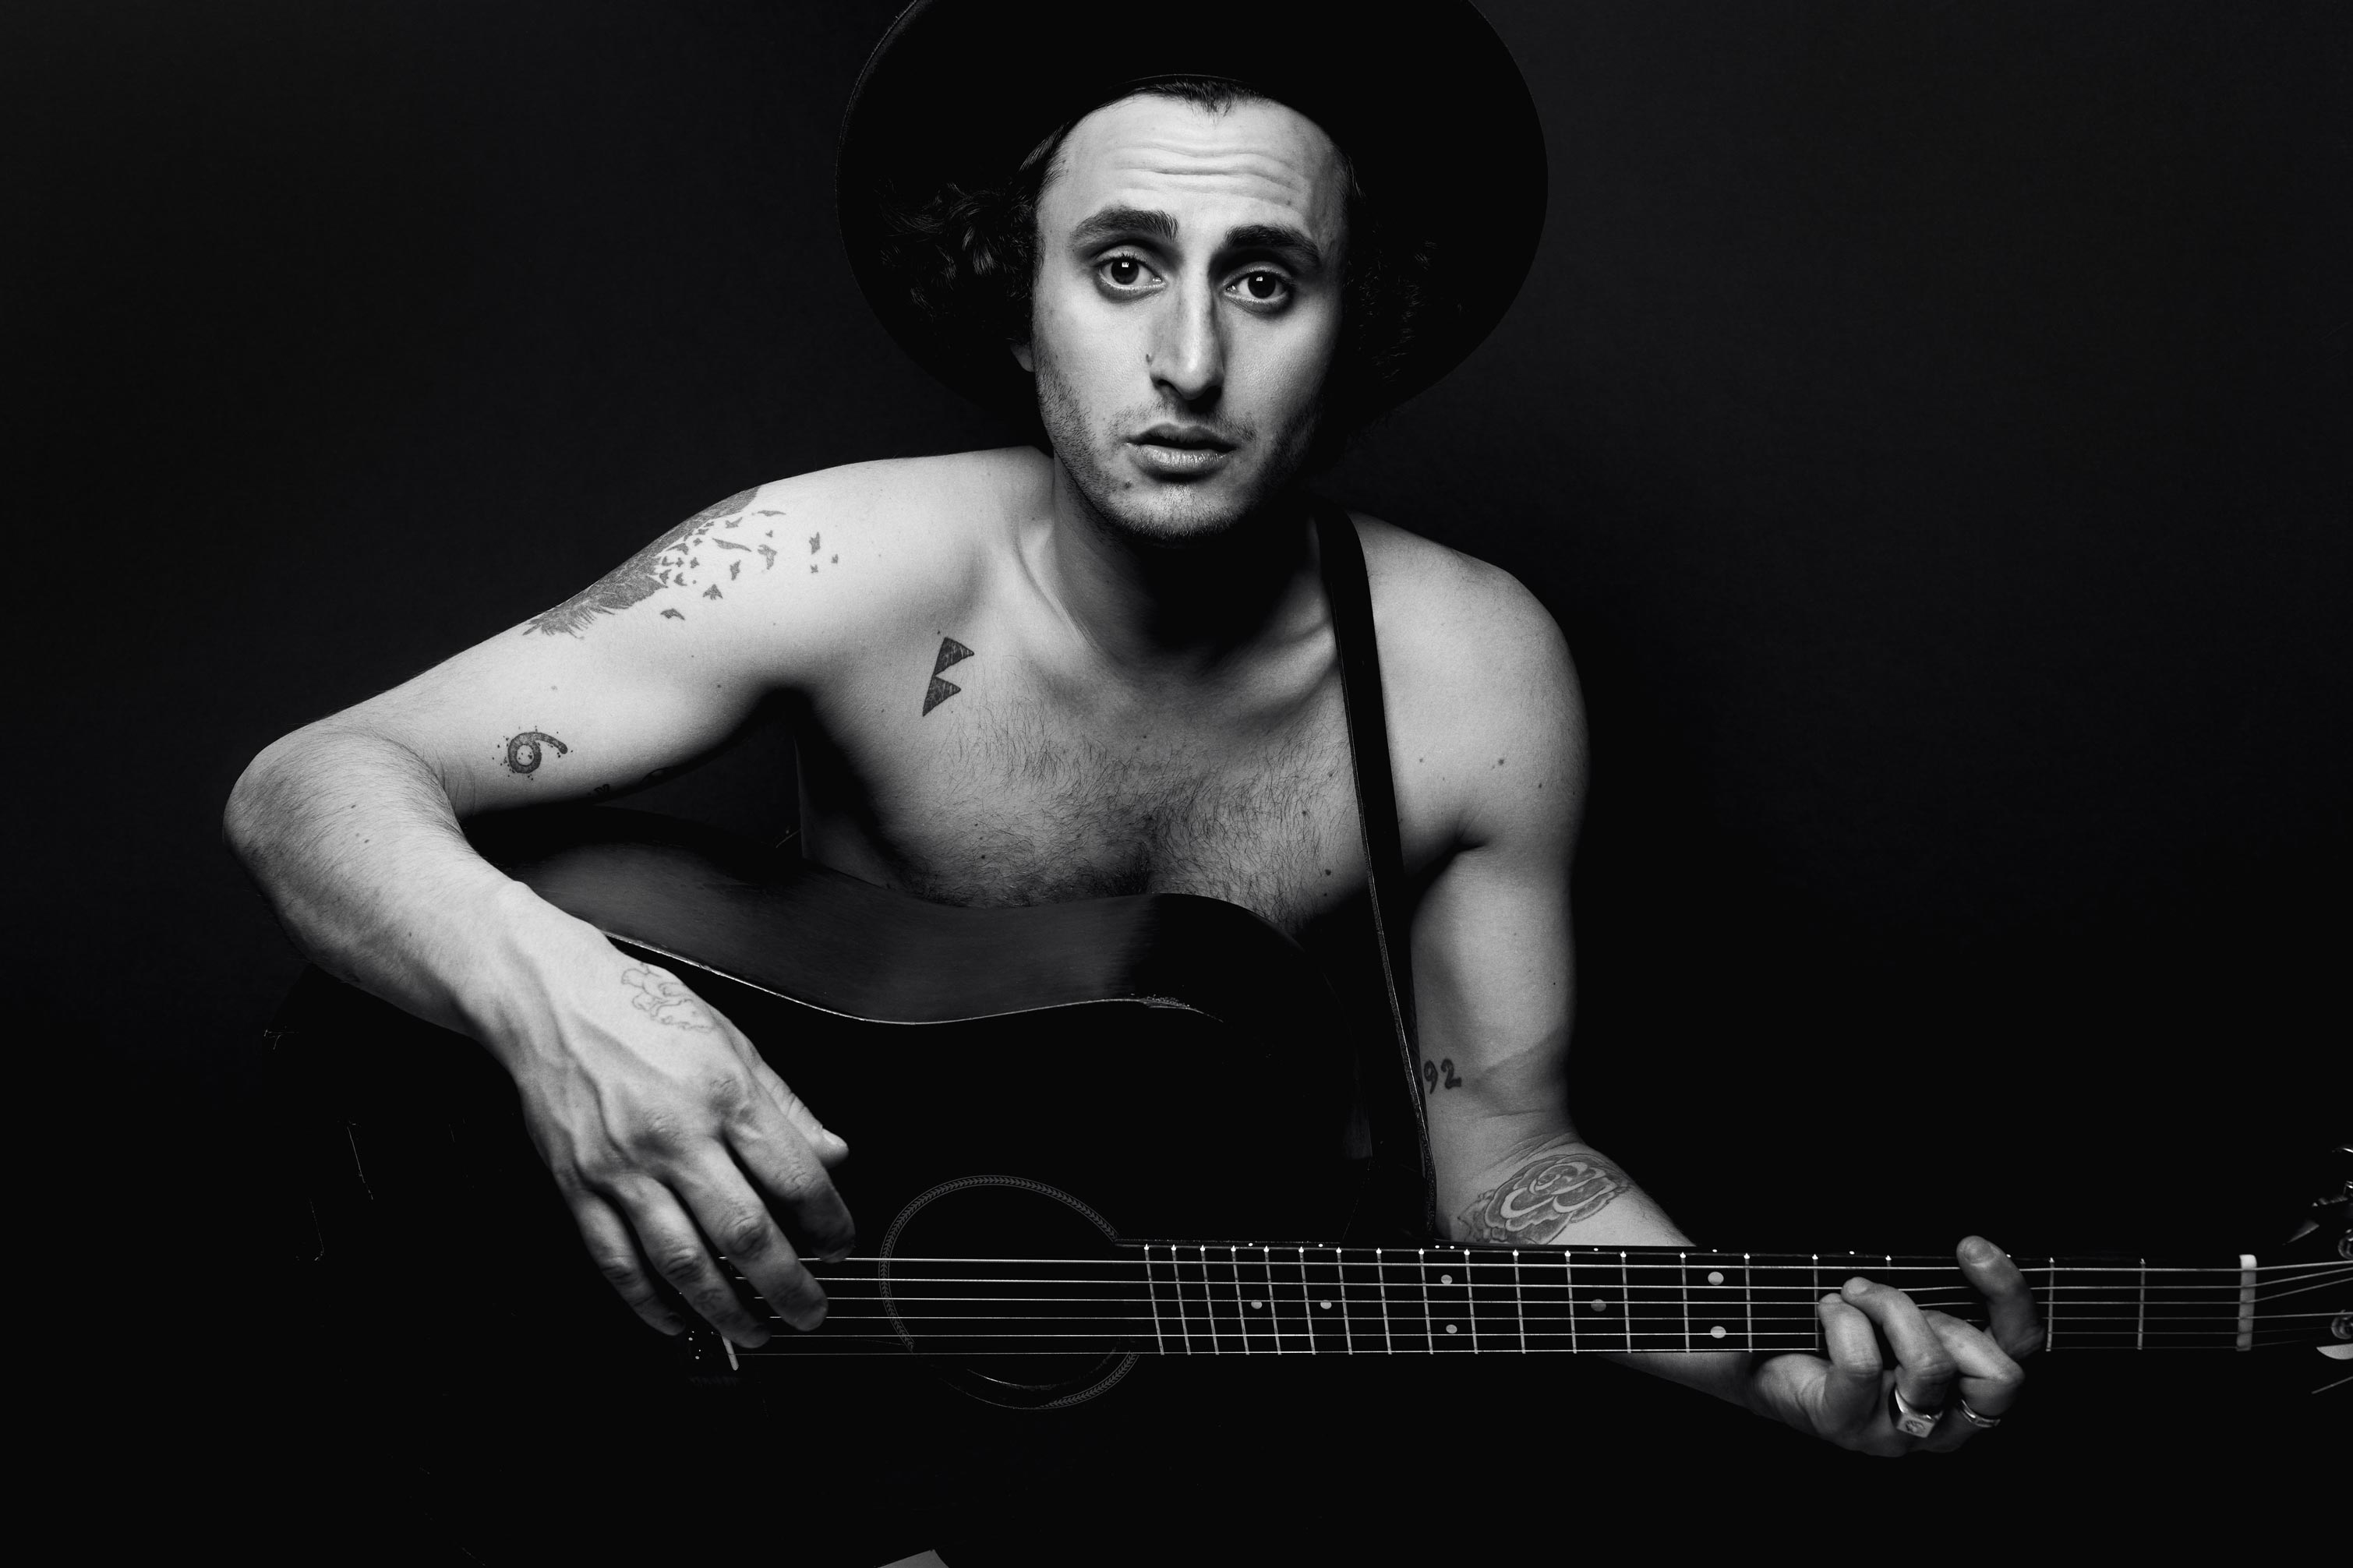 Portrait photography of Rick Pagano in chest with his guitar on a black background. Music album photographer in Montreal.